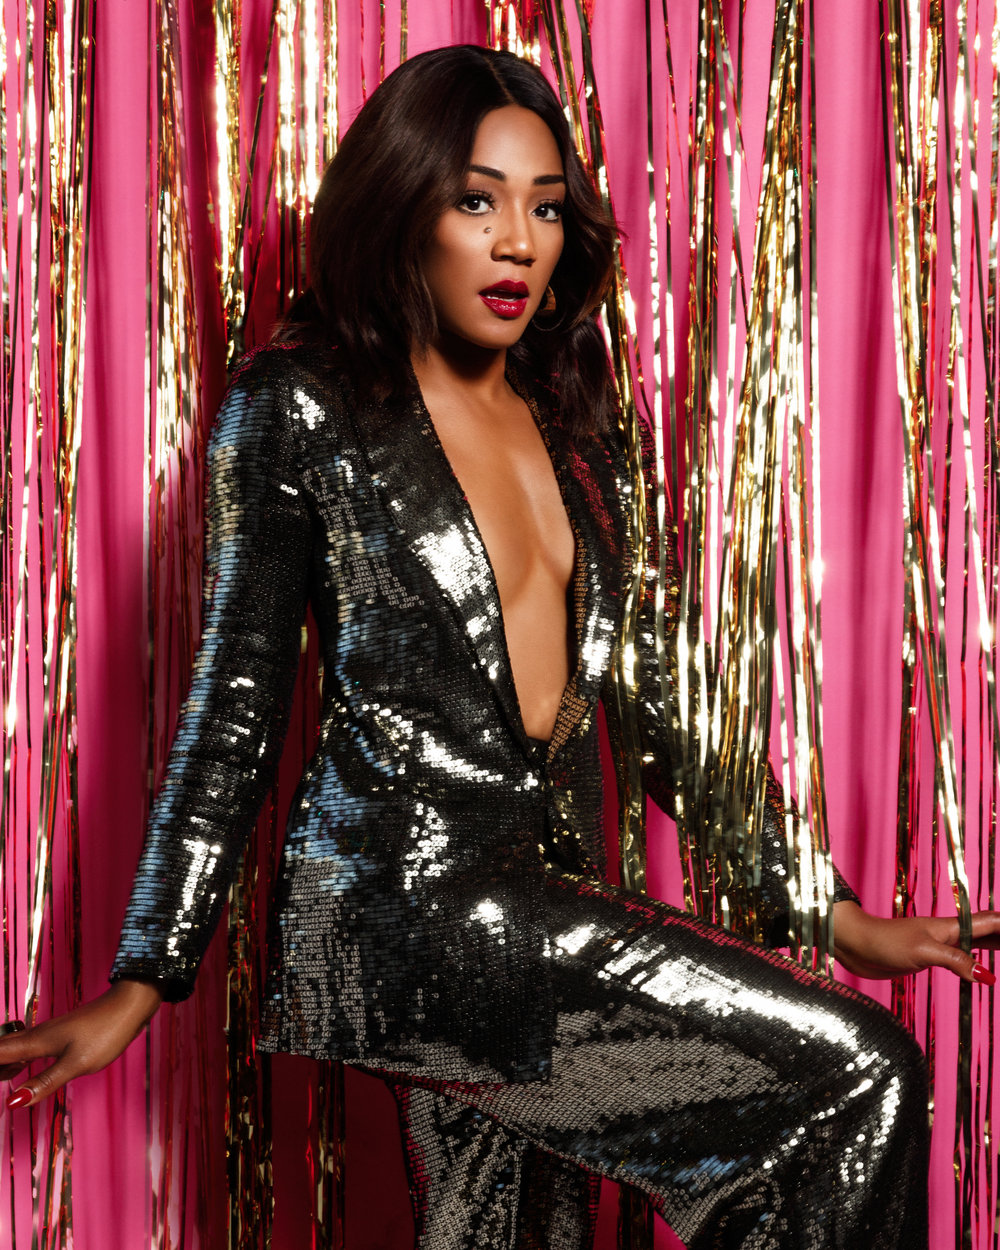 20171010_Tiffany_Haddish8163 fixed.jpg